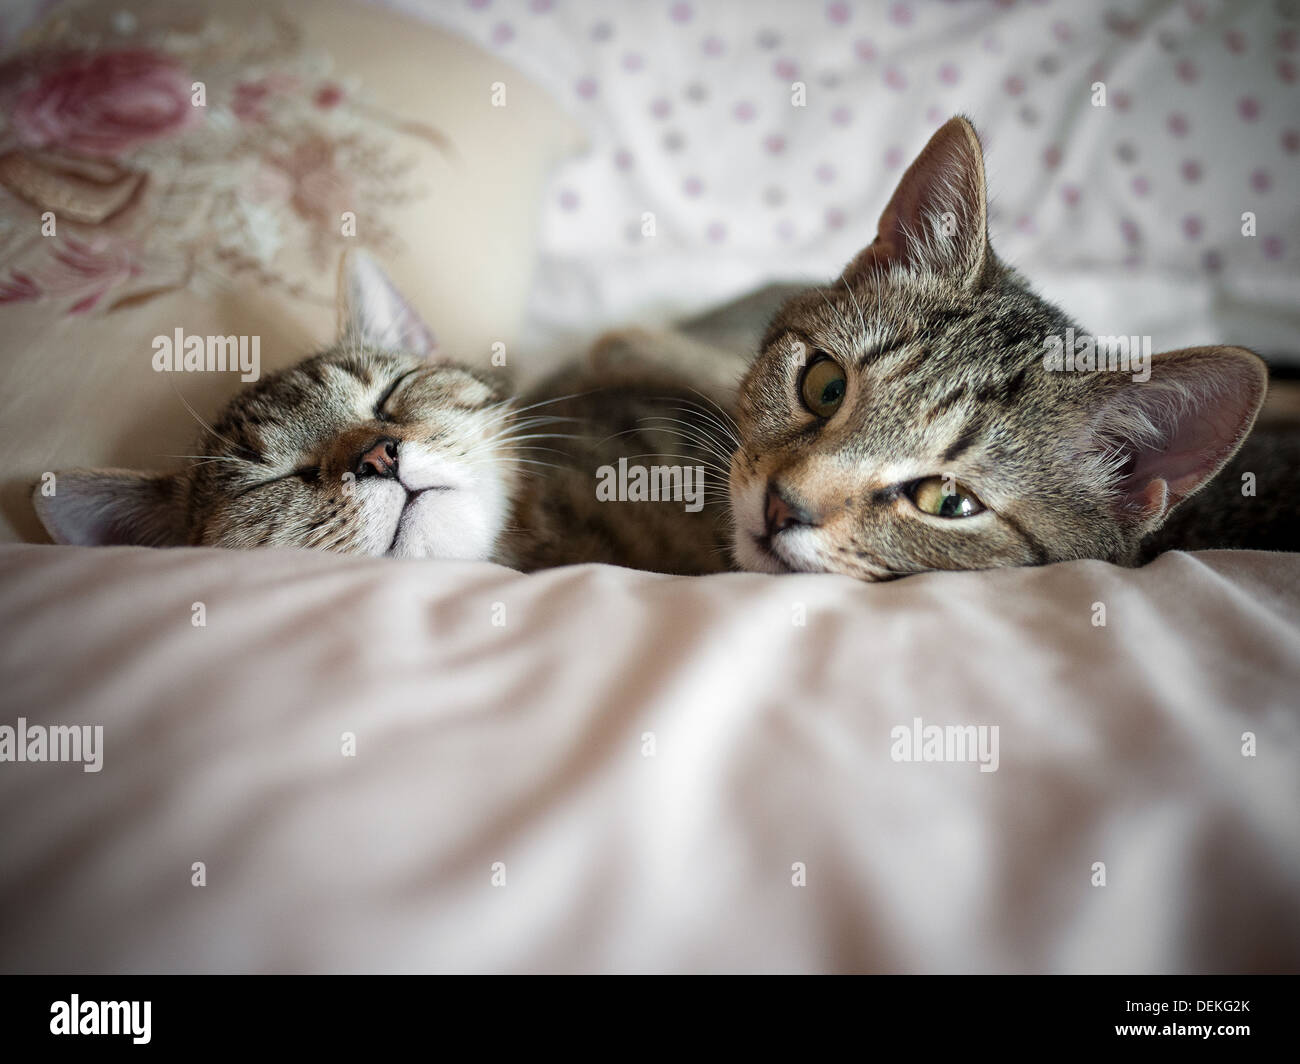 Two kittens sleeping together - Stock Image